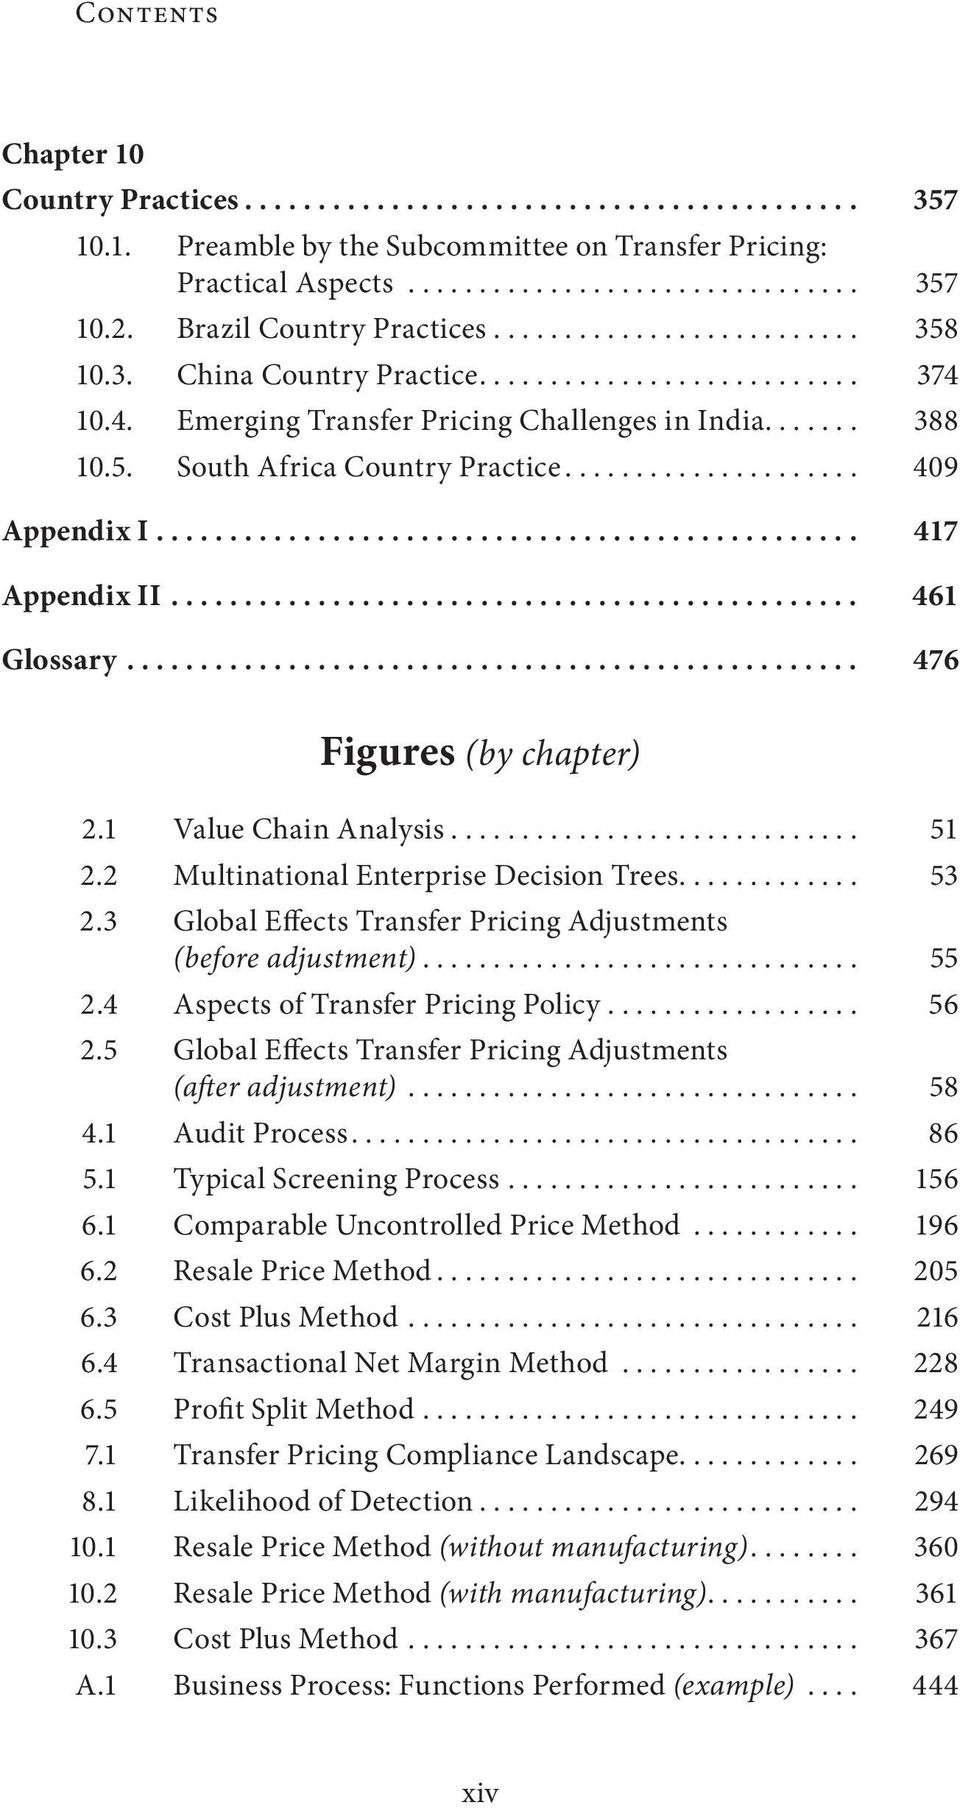 1 Value Chain Analysis... 51 2.2 Multinational Enterprise Decision Trees.... 53 2.3 Global Effects Transfer Pricing Adjustments (before adjustment)... 55 2.4 Aspects of Transfer Pricing Policy... 56 2.